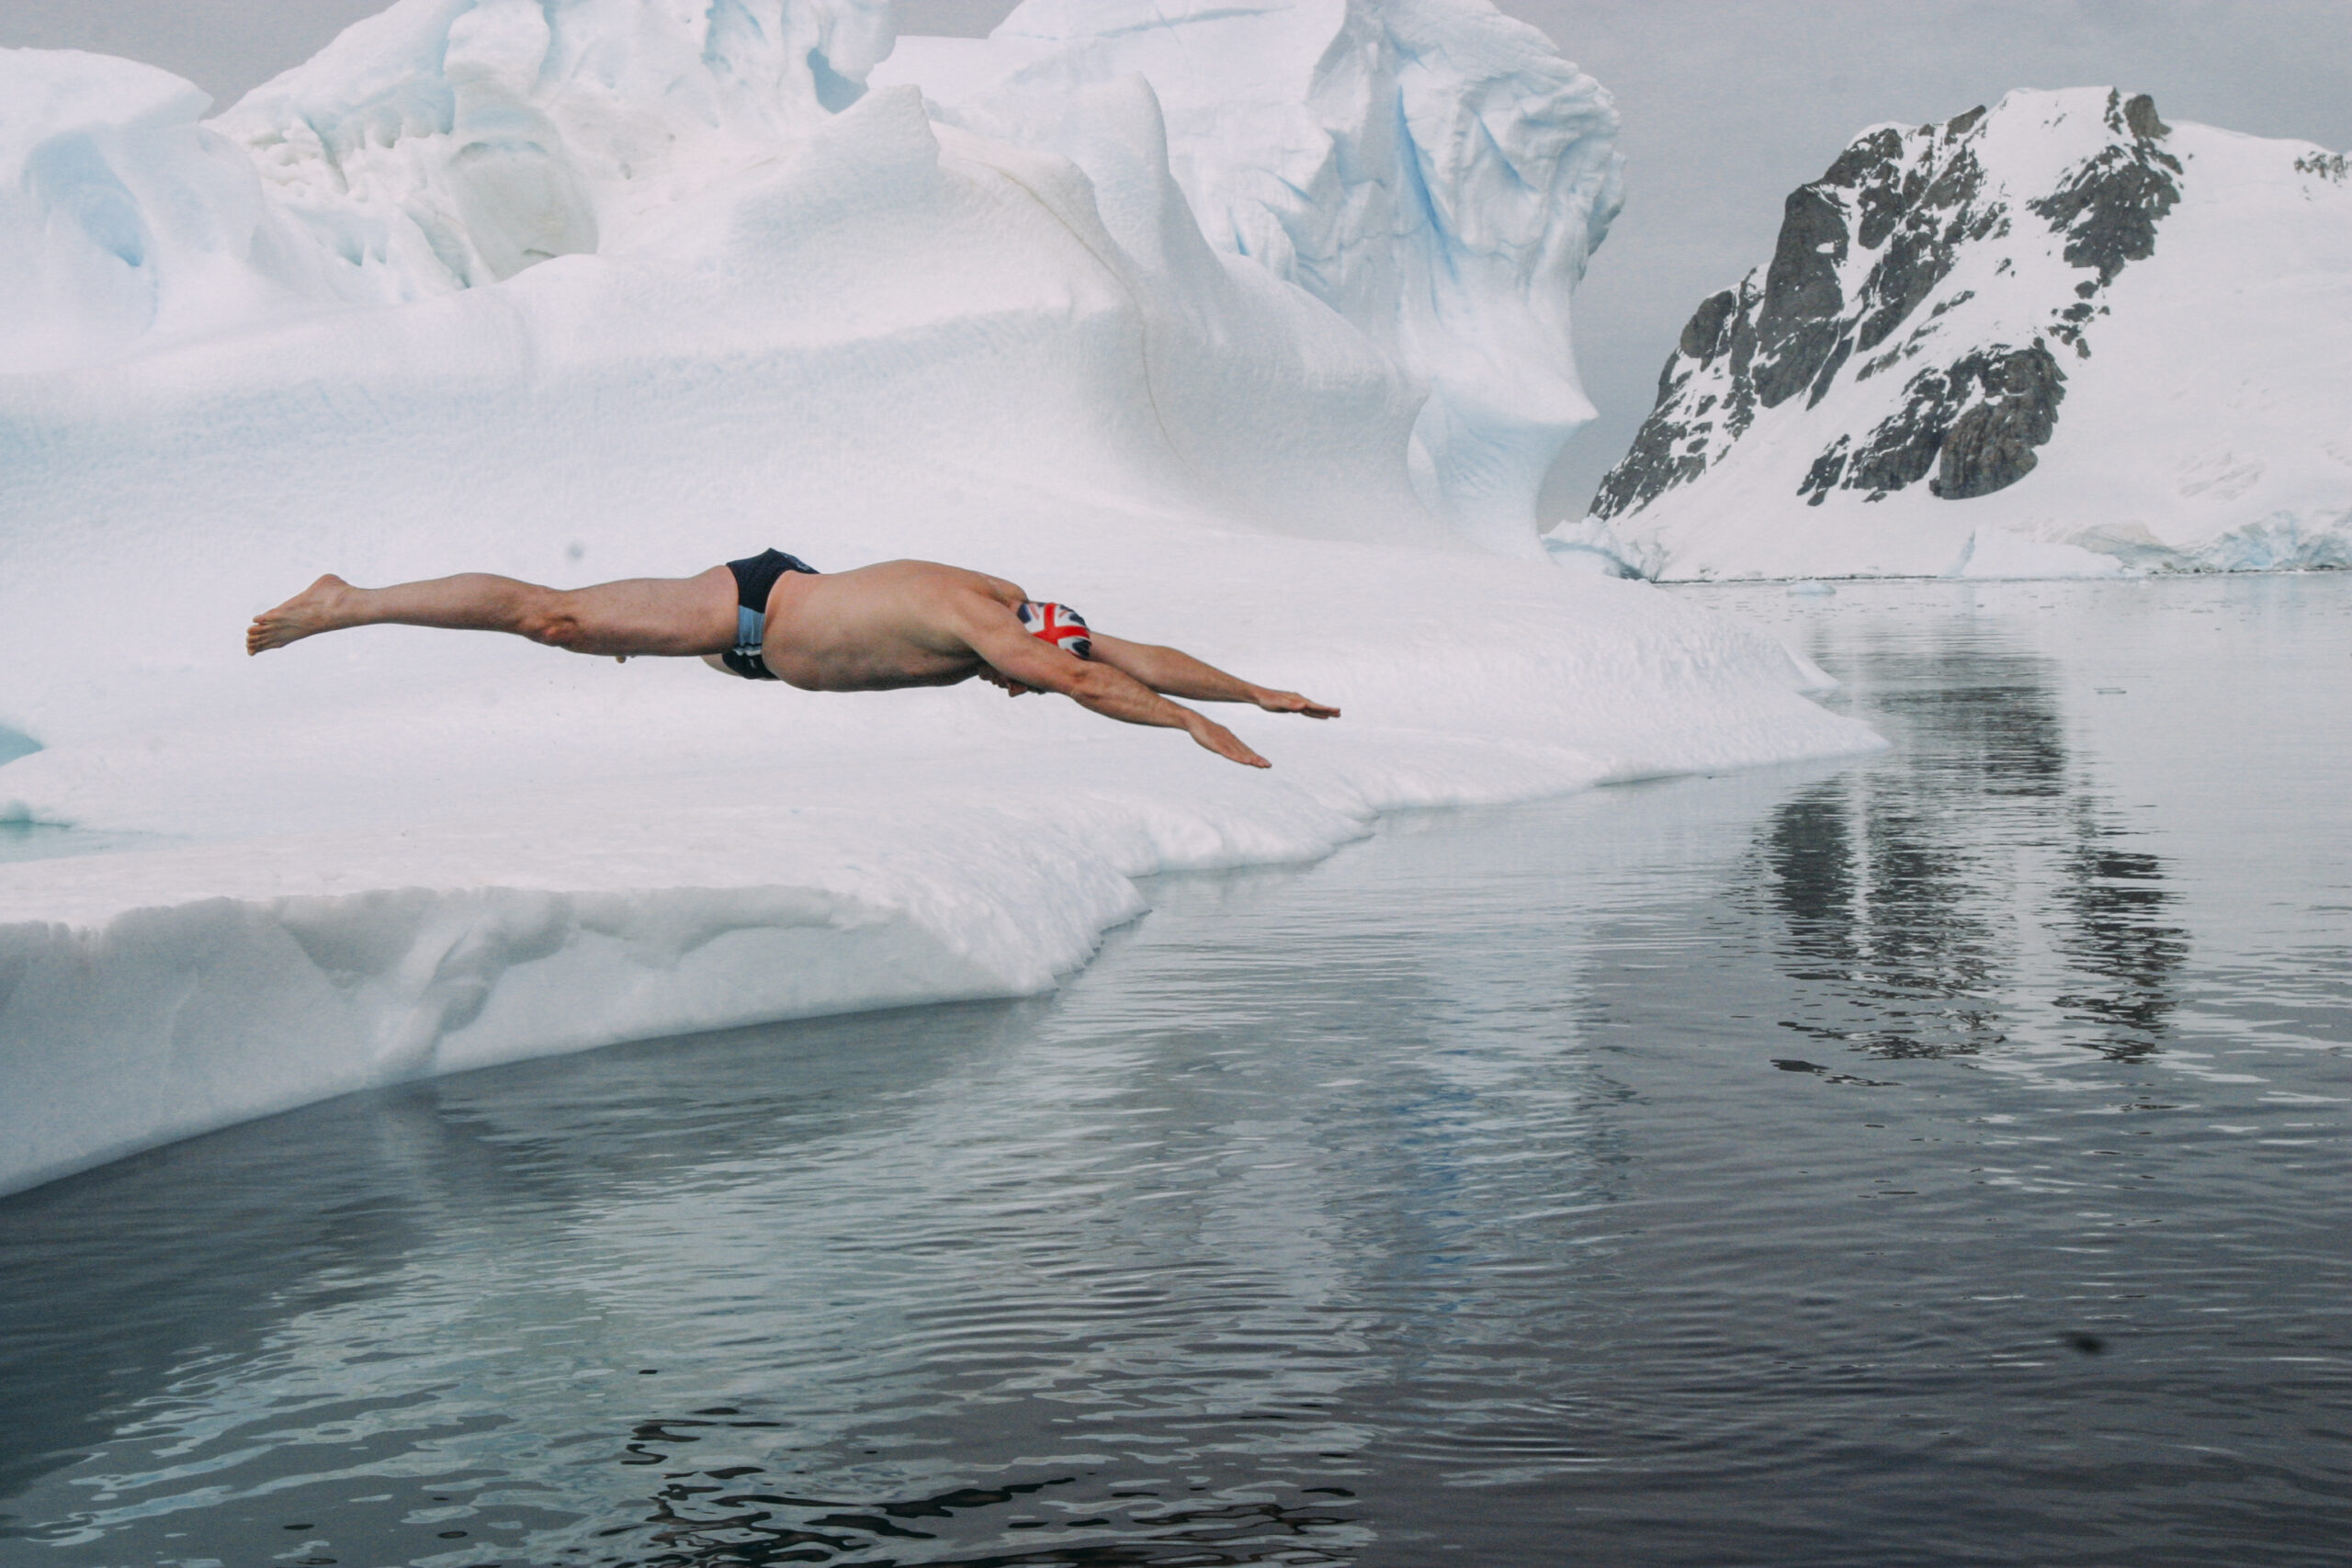 Swimming at Ilulissat shows effects of global warming